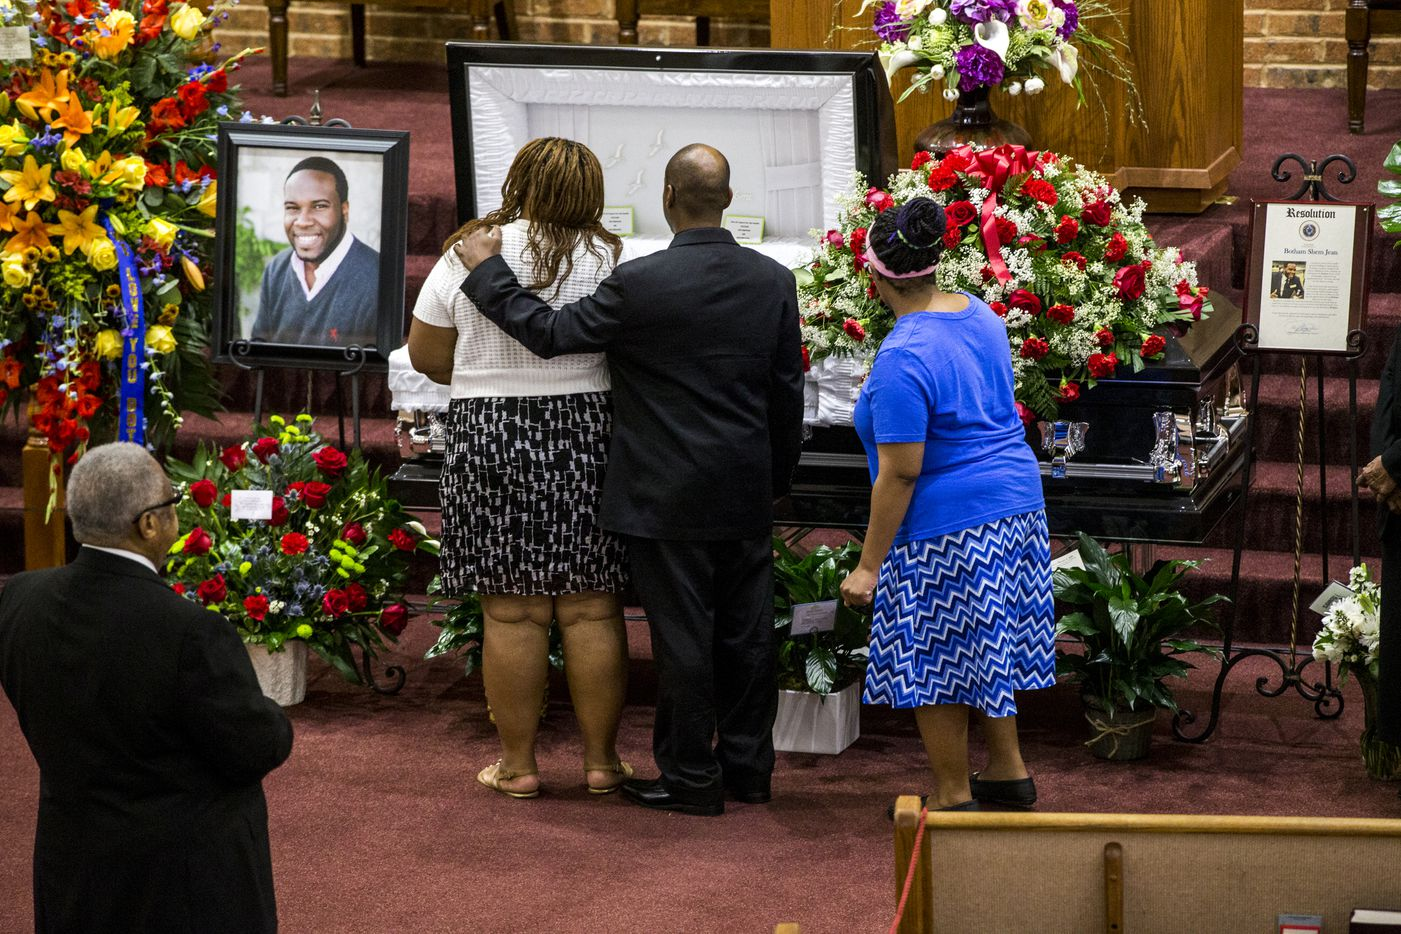 Mourners console each other during the public viewing before the funeral of Botham Shem Jean at the Greenville Avenue Church of Christ on Thursday, September 13, 2018 in Richardson, Texas. He was shot and killed by a Dallas police officer in his apartment last week in Dallas. (Shaban Athuman/ The Dallas Morning News)